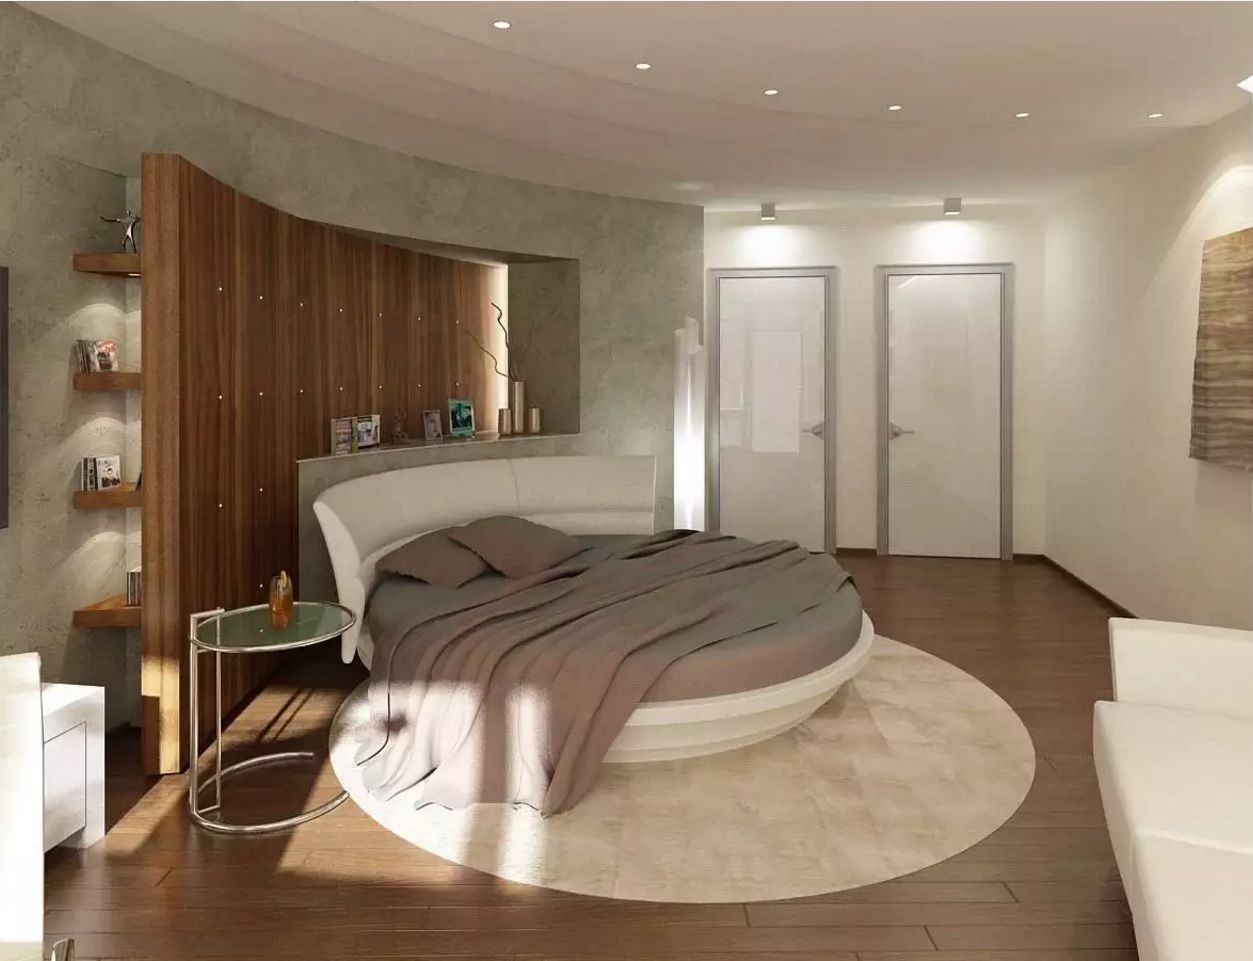 Circle Bed in Unique Bedroom Interior Design - Small Design Ideas